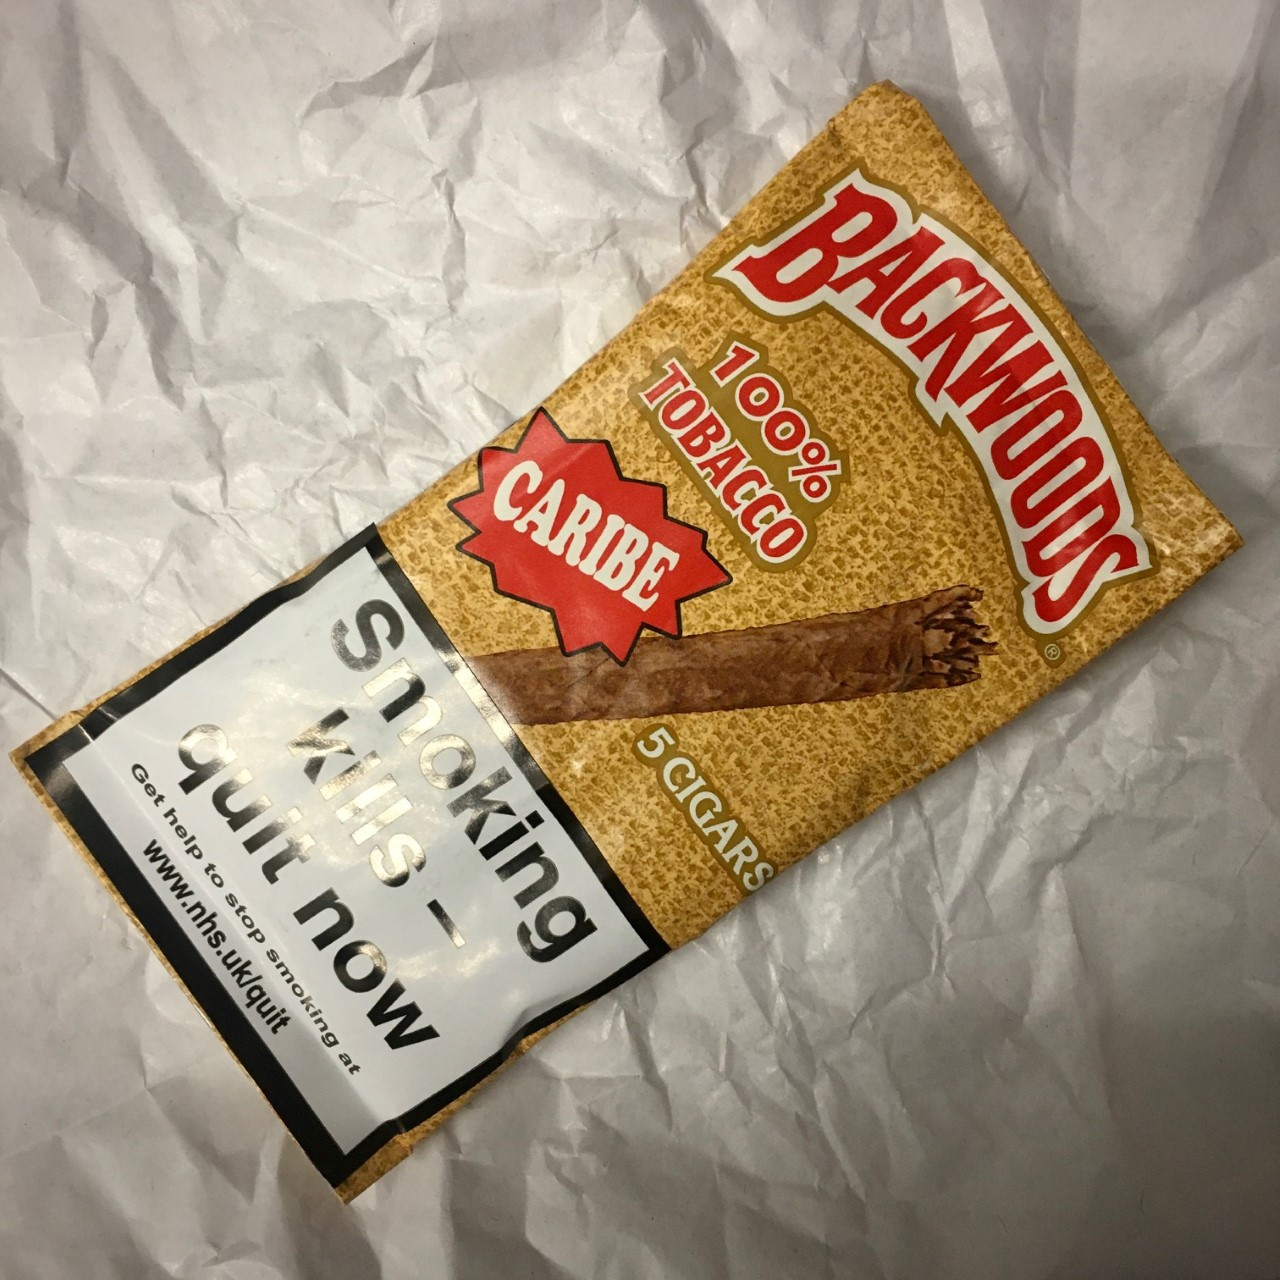 Backwoods Caribe Rum Cigars - Pack of 5